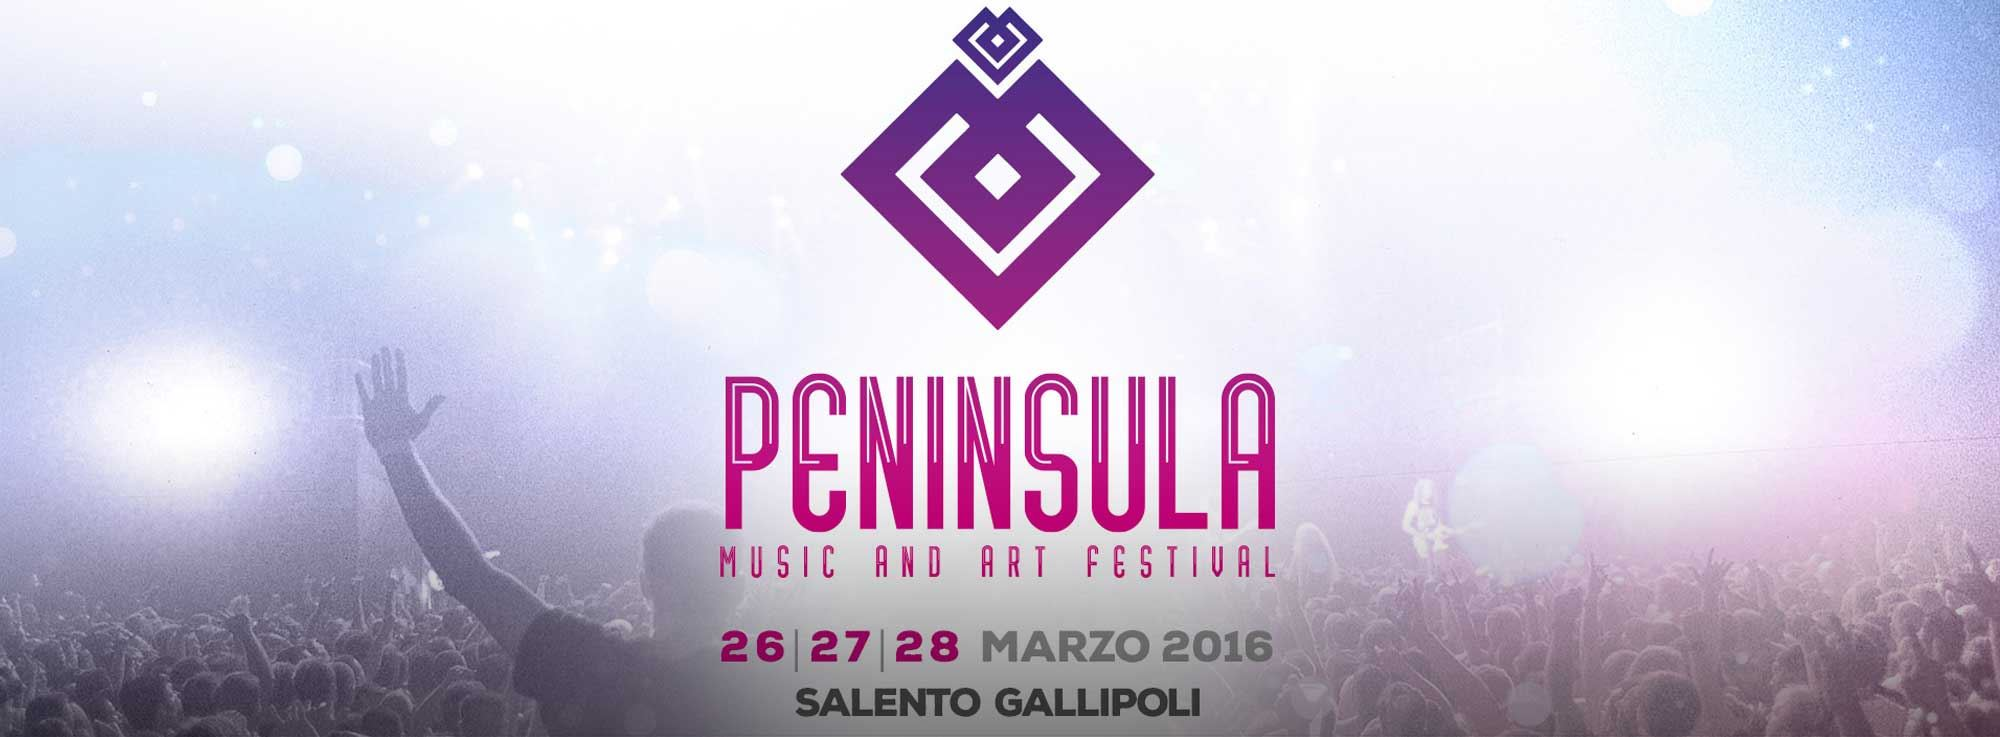 Gallipoli: Peninsula Music & Art Festival